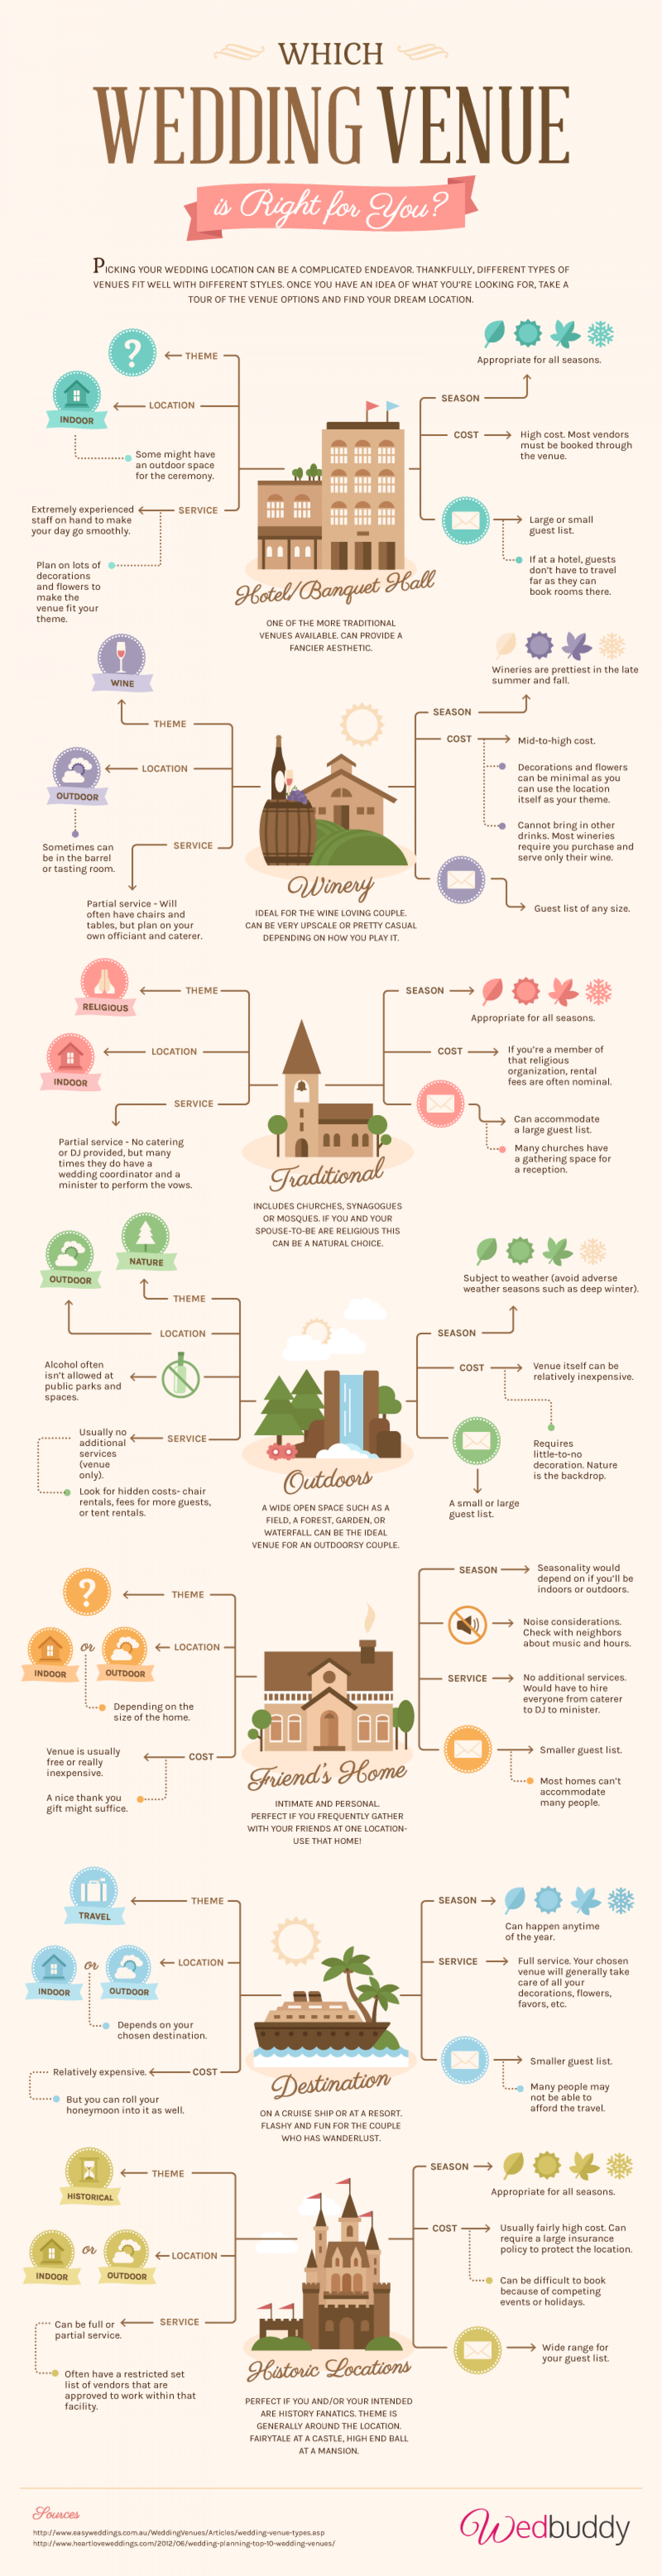 Which Wedding Venue is Right for You? Infographic